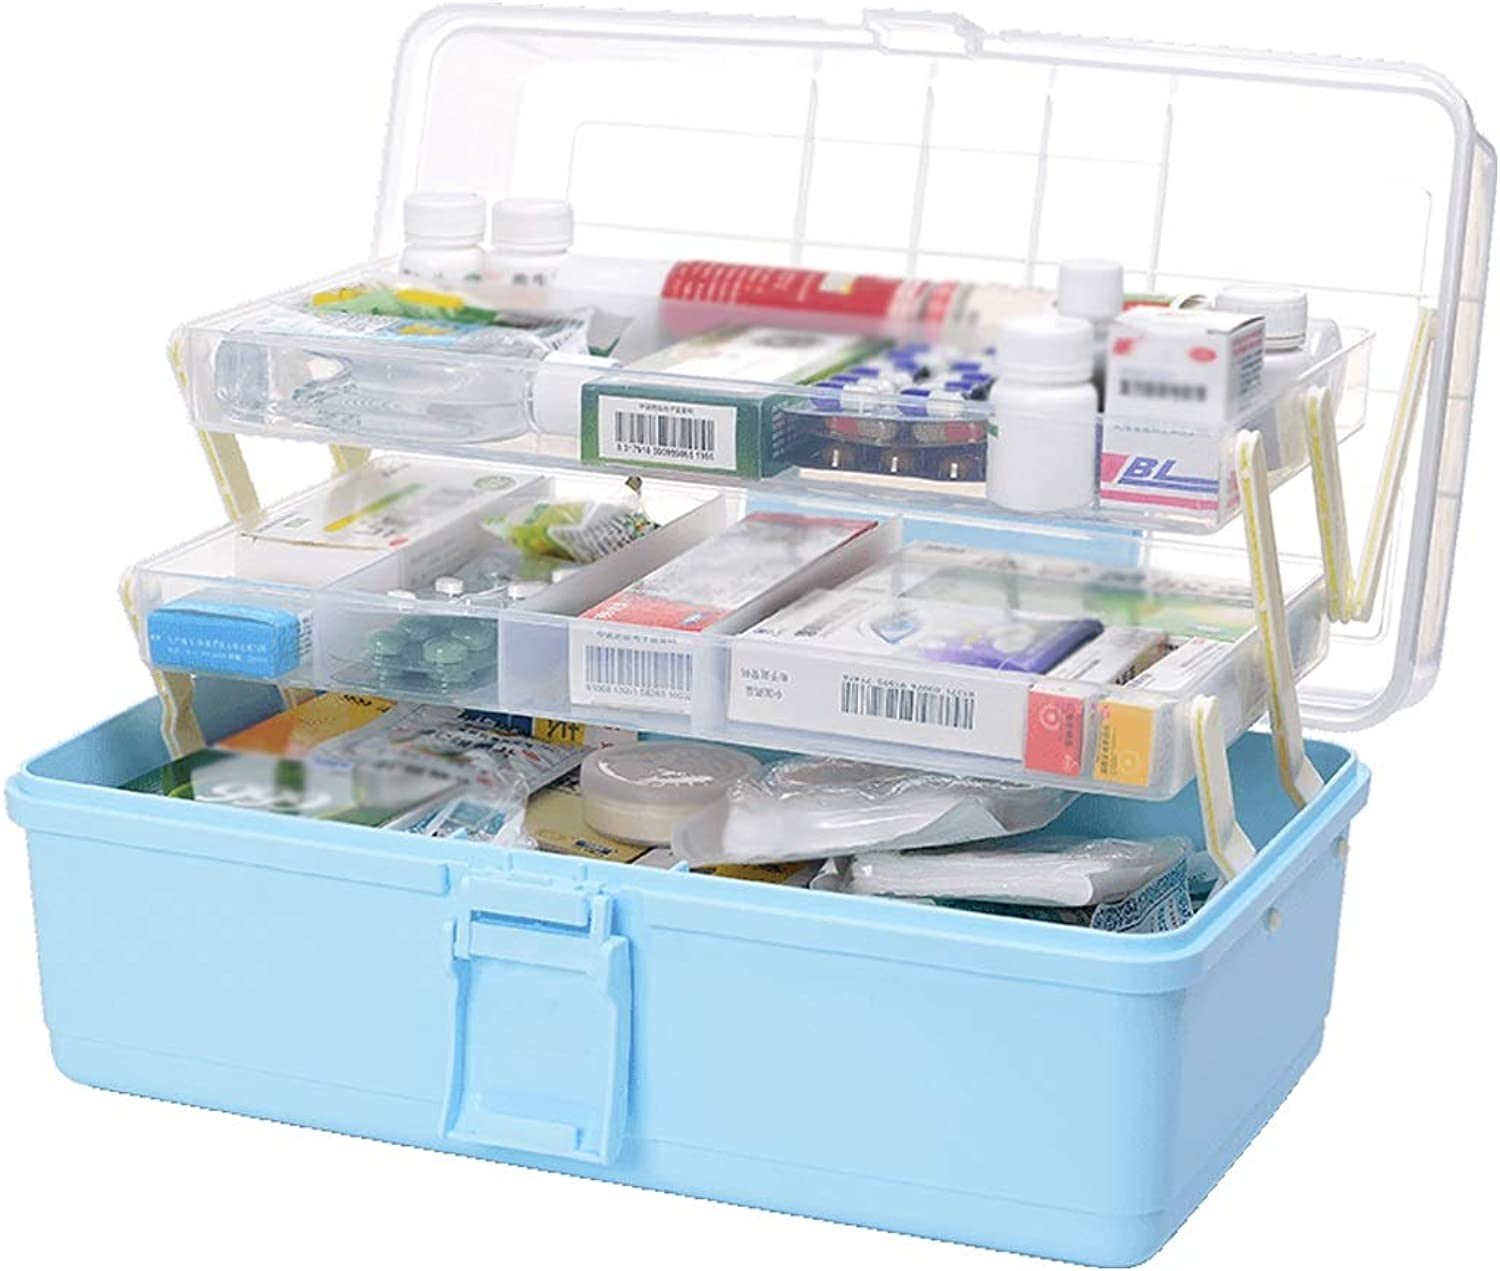 Djyyh First Aid Storage Box Medical Box, Three Layer Medical Storage First Aid Container Organizer for Home, Travel, Camping, Office and The Workplace (color   bluee)